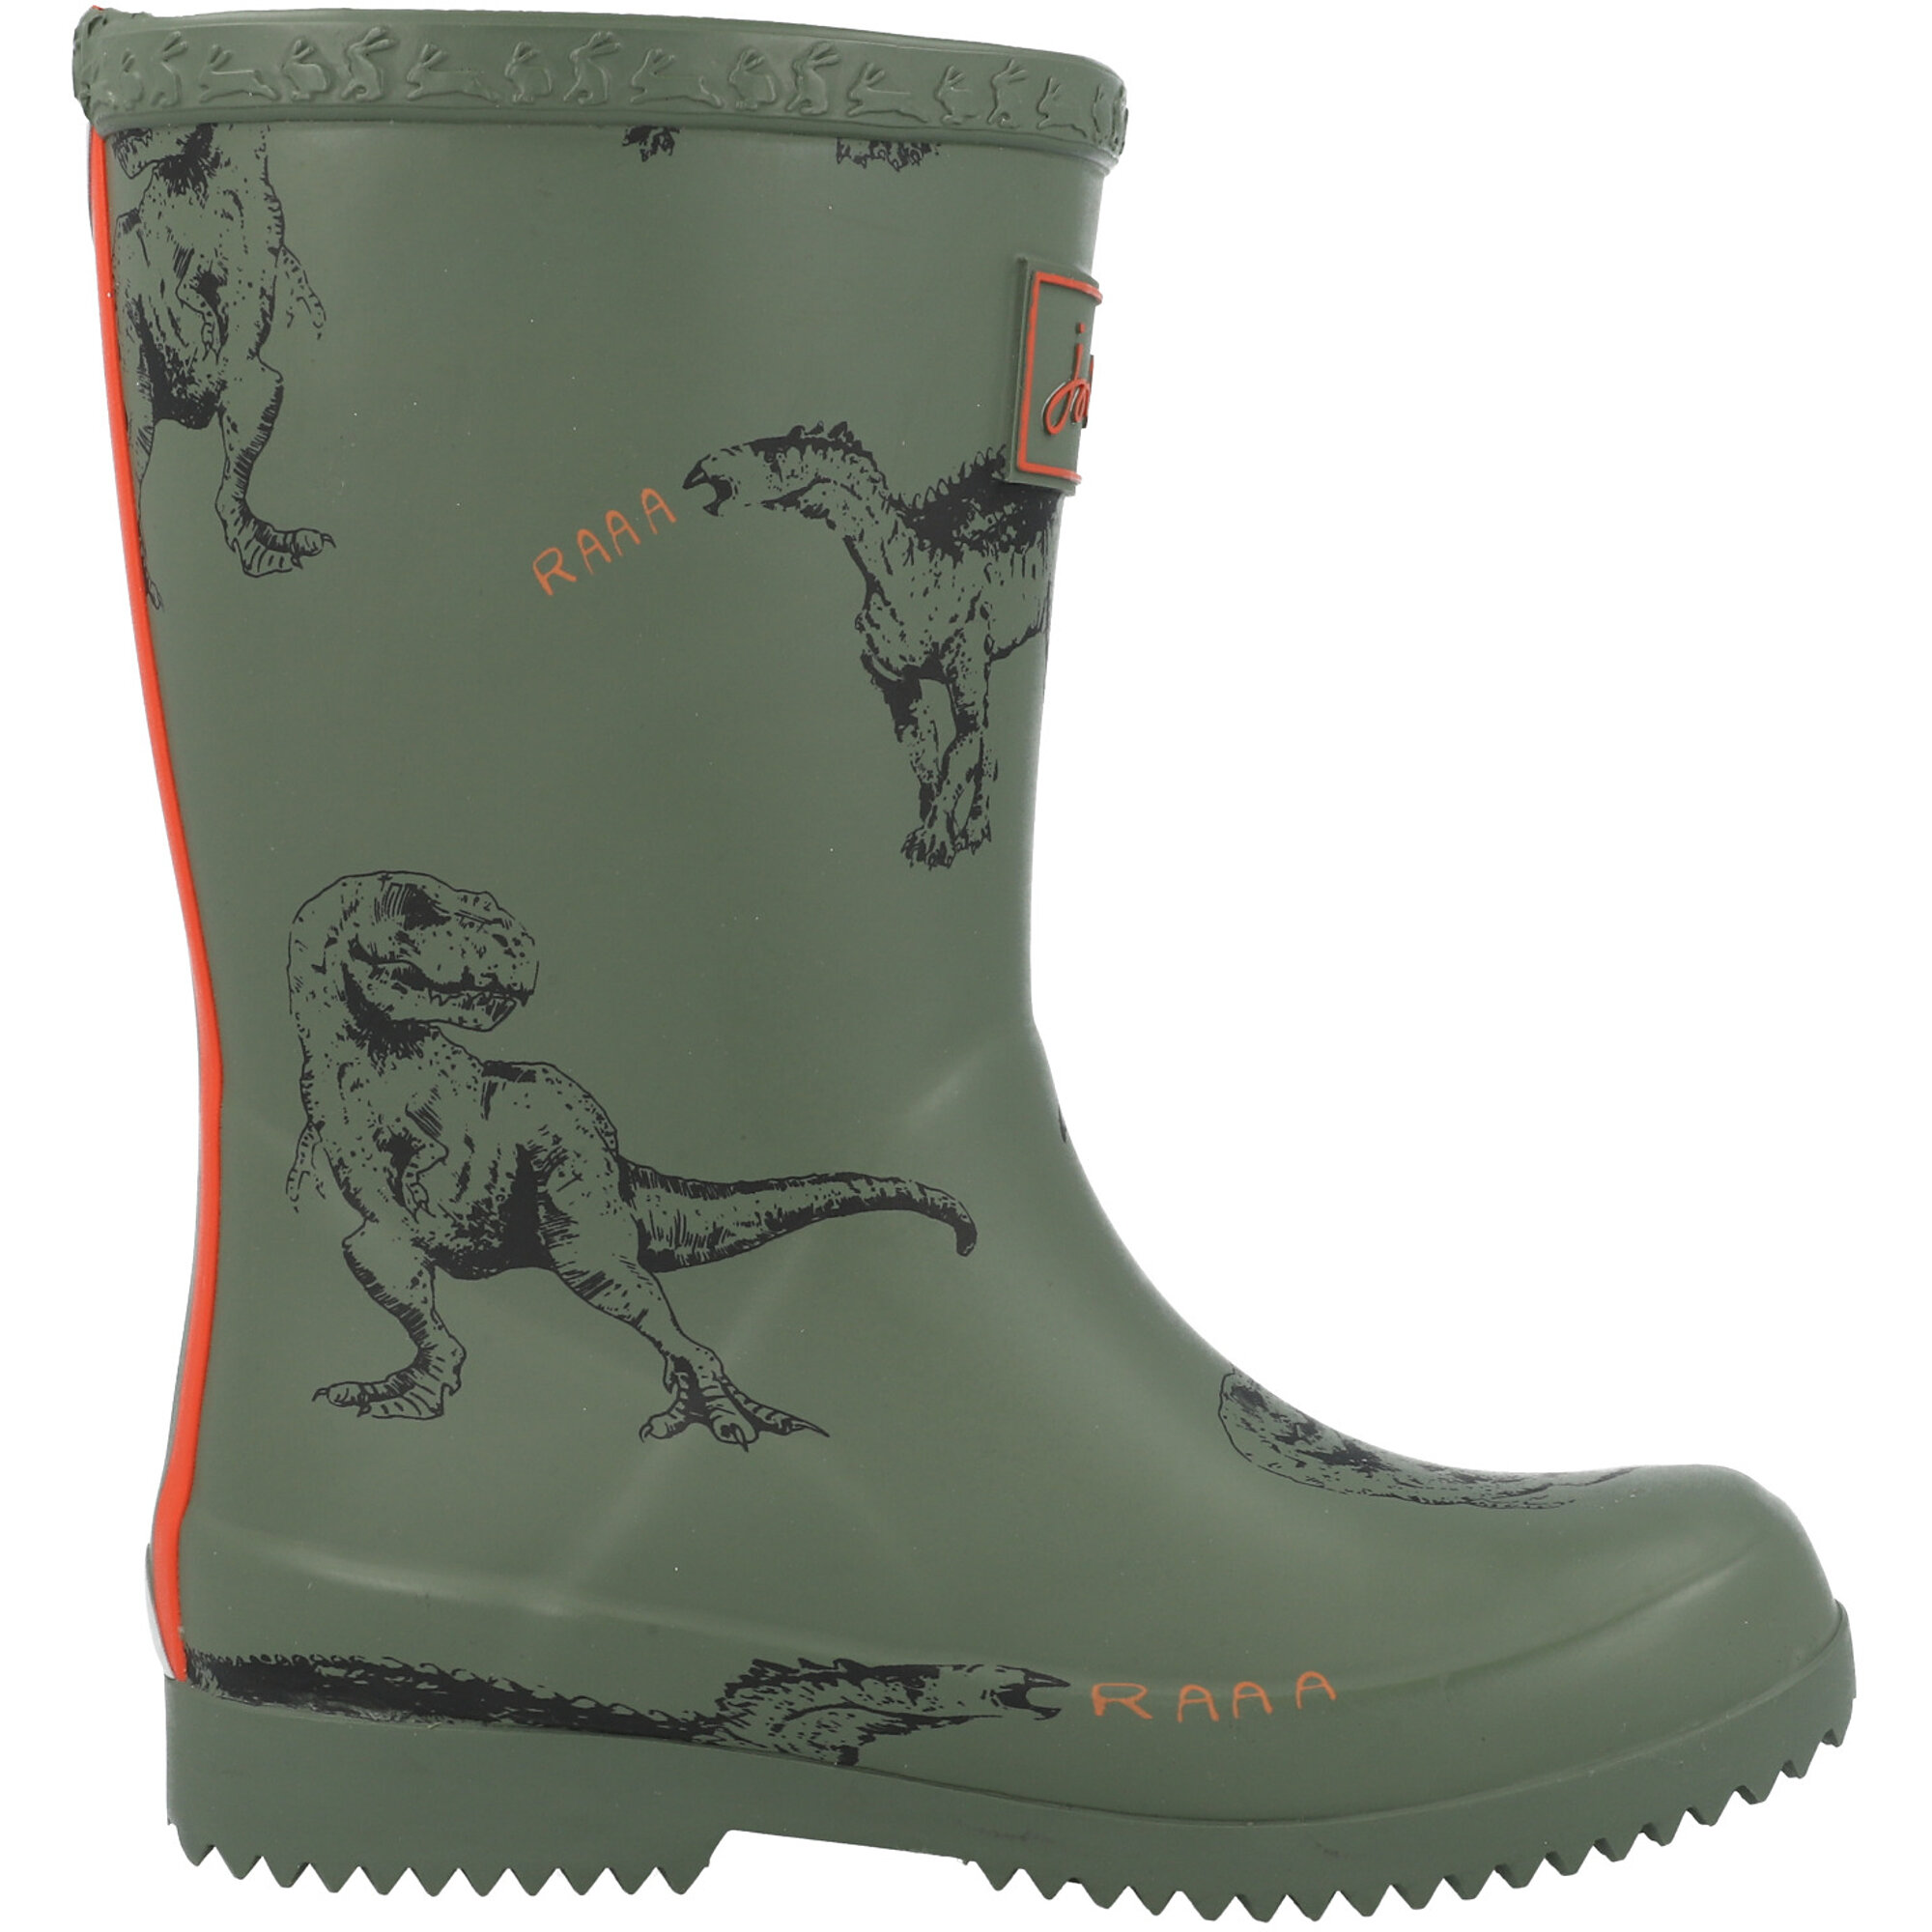 Joules Jnr Roll Up Welly Dinosaur Green Rubber